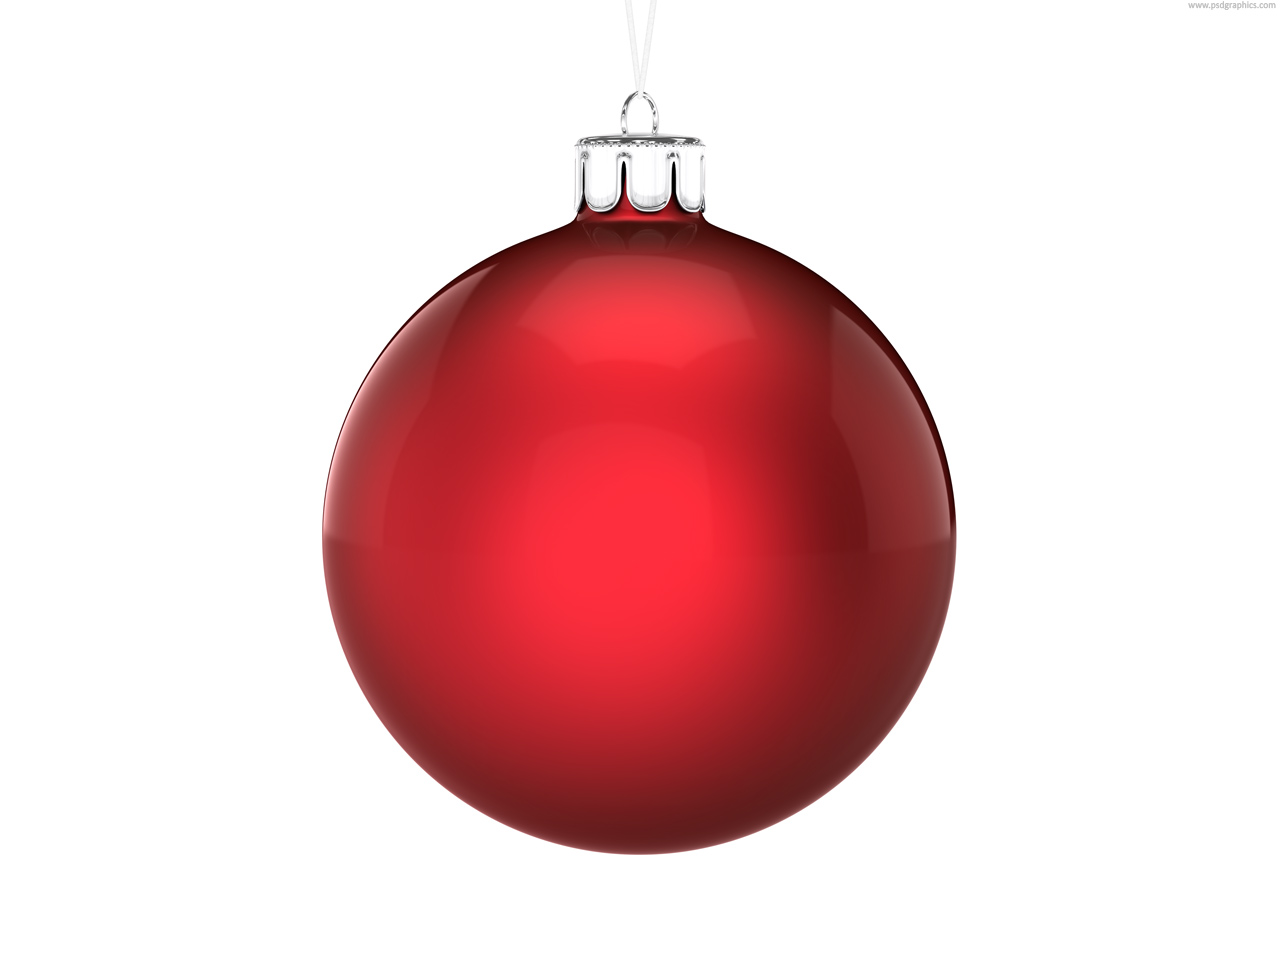 Sphere clipart red ball Ornament silver christmas ornaments Red